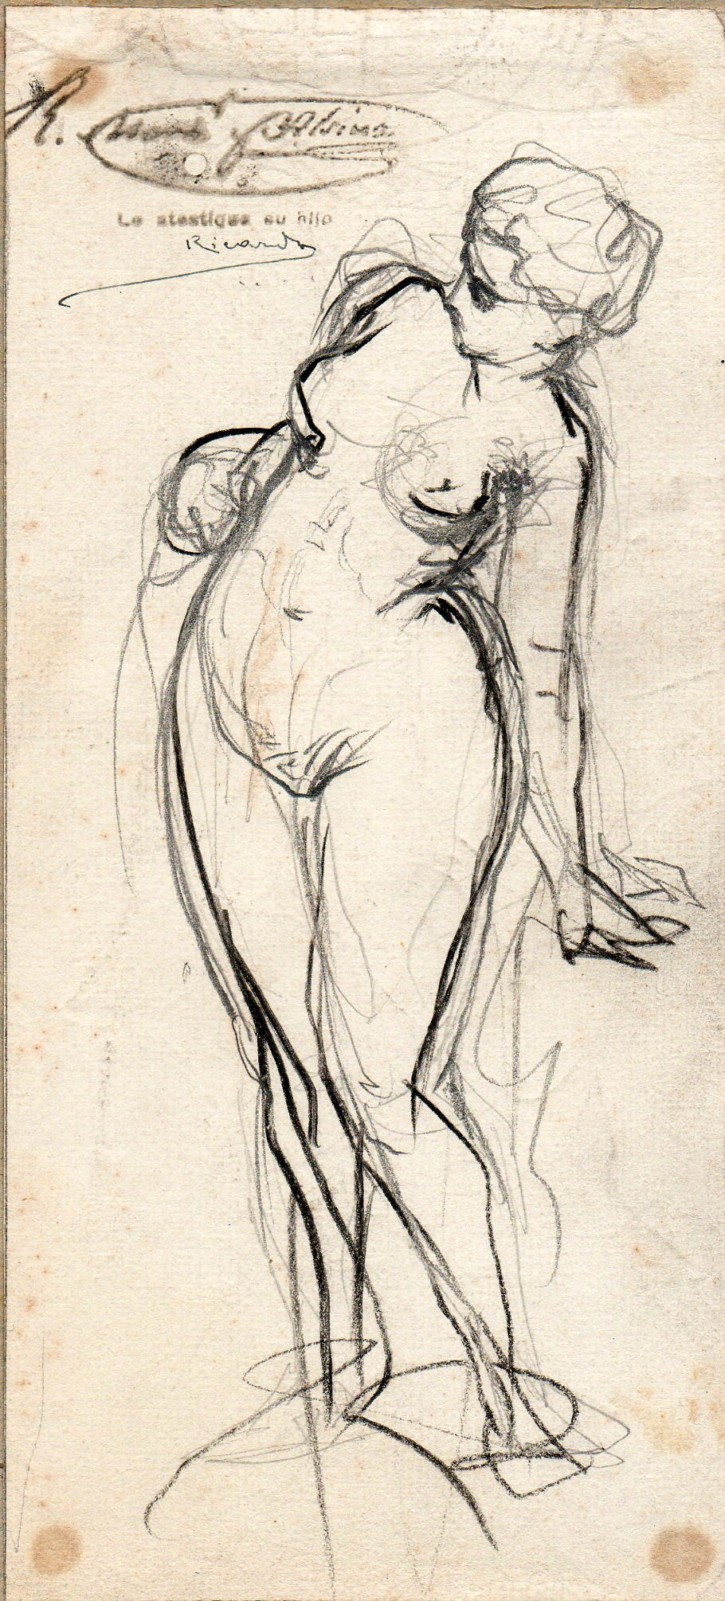 Sketch of a woman